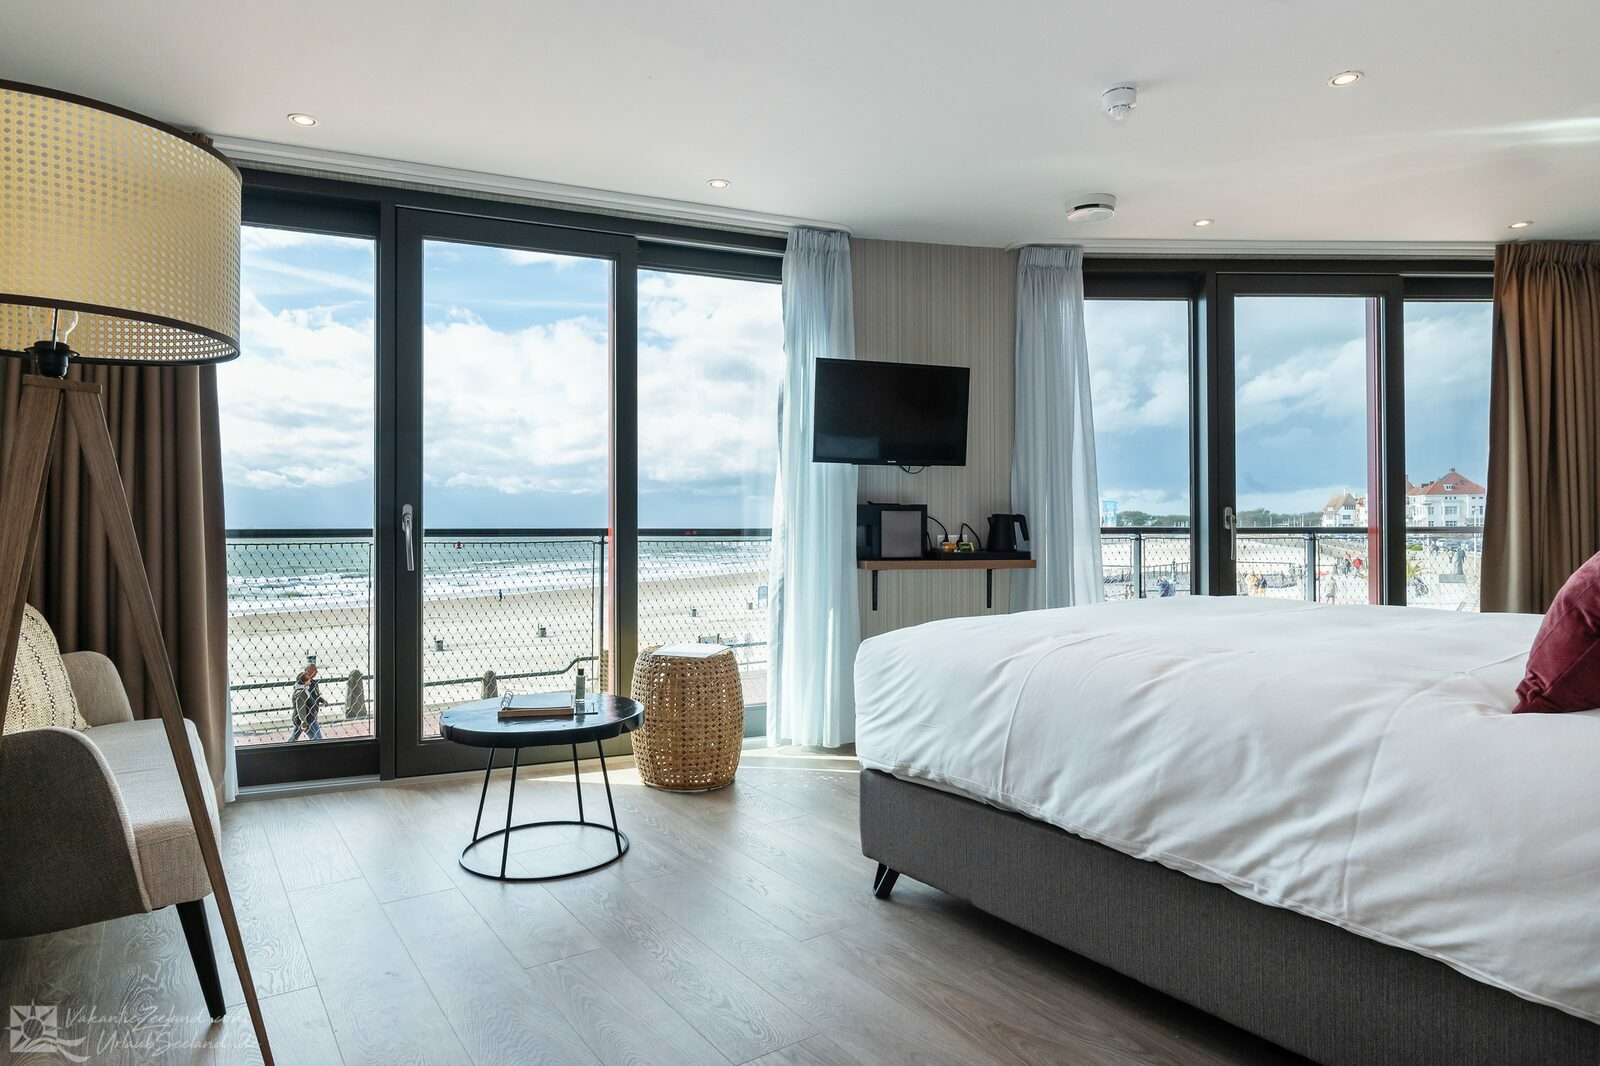 VZ915 Deluxe Ocean Suite in Vlissingen